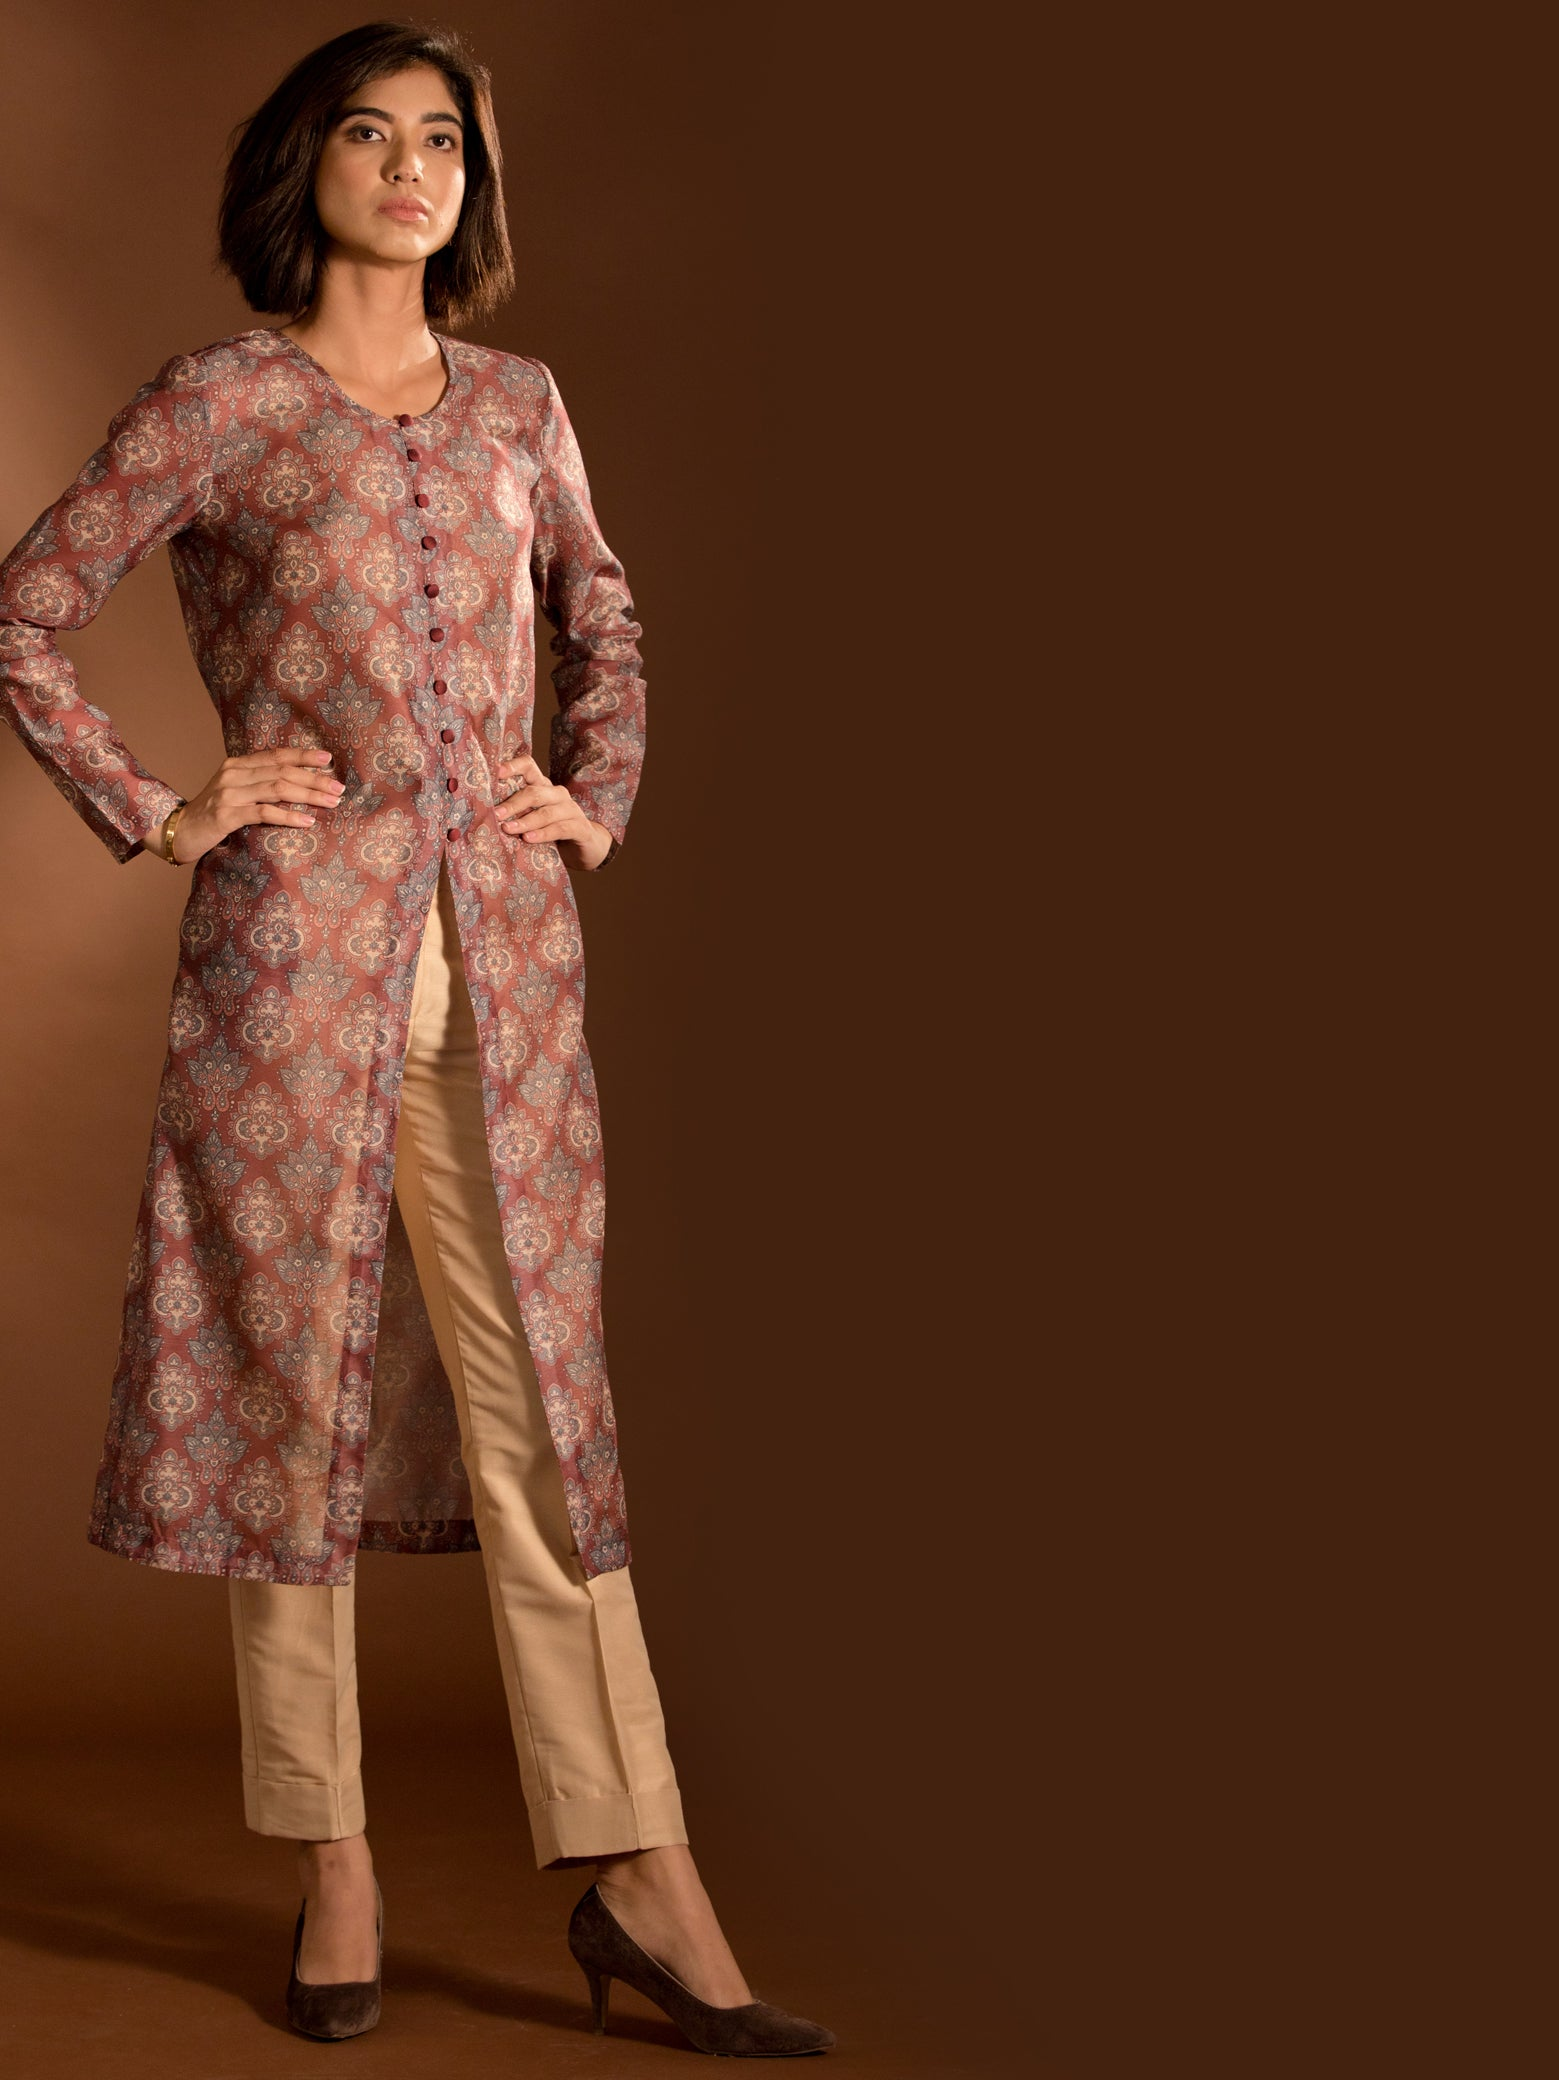 Chanderi Printed Jacket Shrug and Cotton Silk Cigarette Pants Co-ord - Maroon and Gold